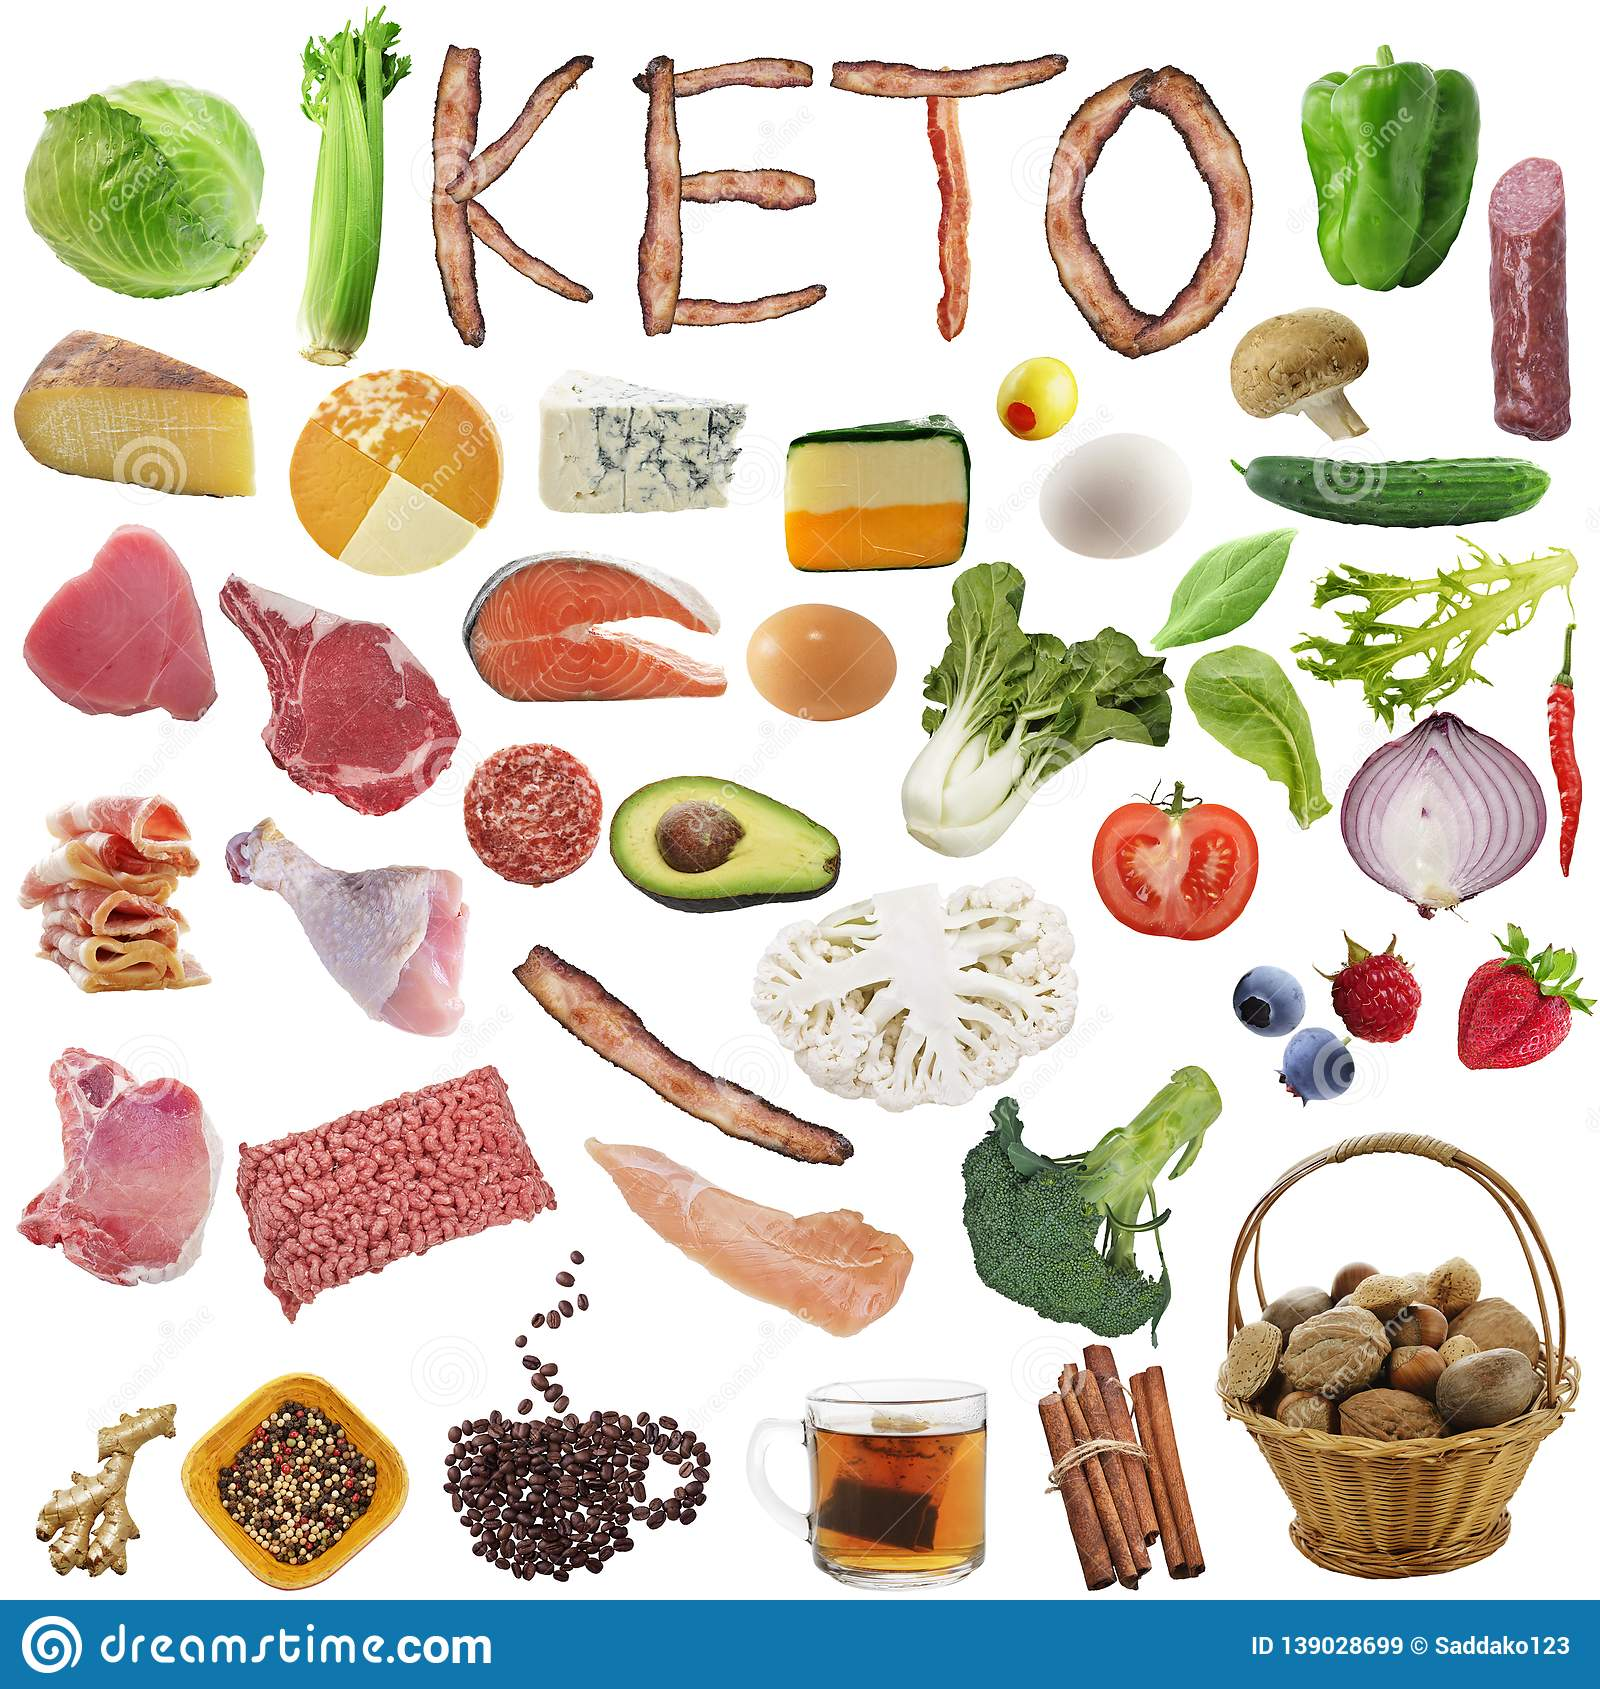 Diets Low Carbohydrate: Ketogenic Diet Food. Balanced Low-carb Food On White